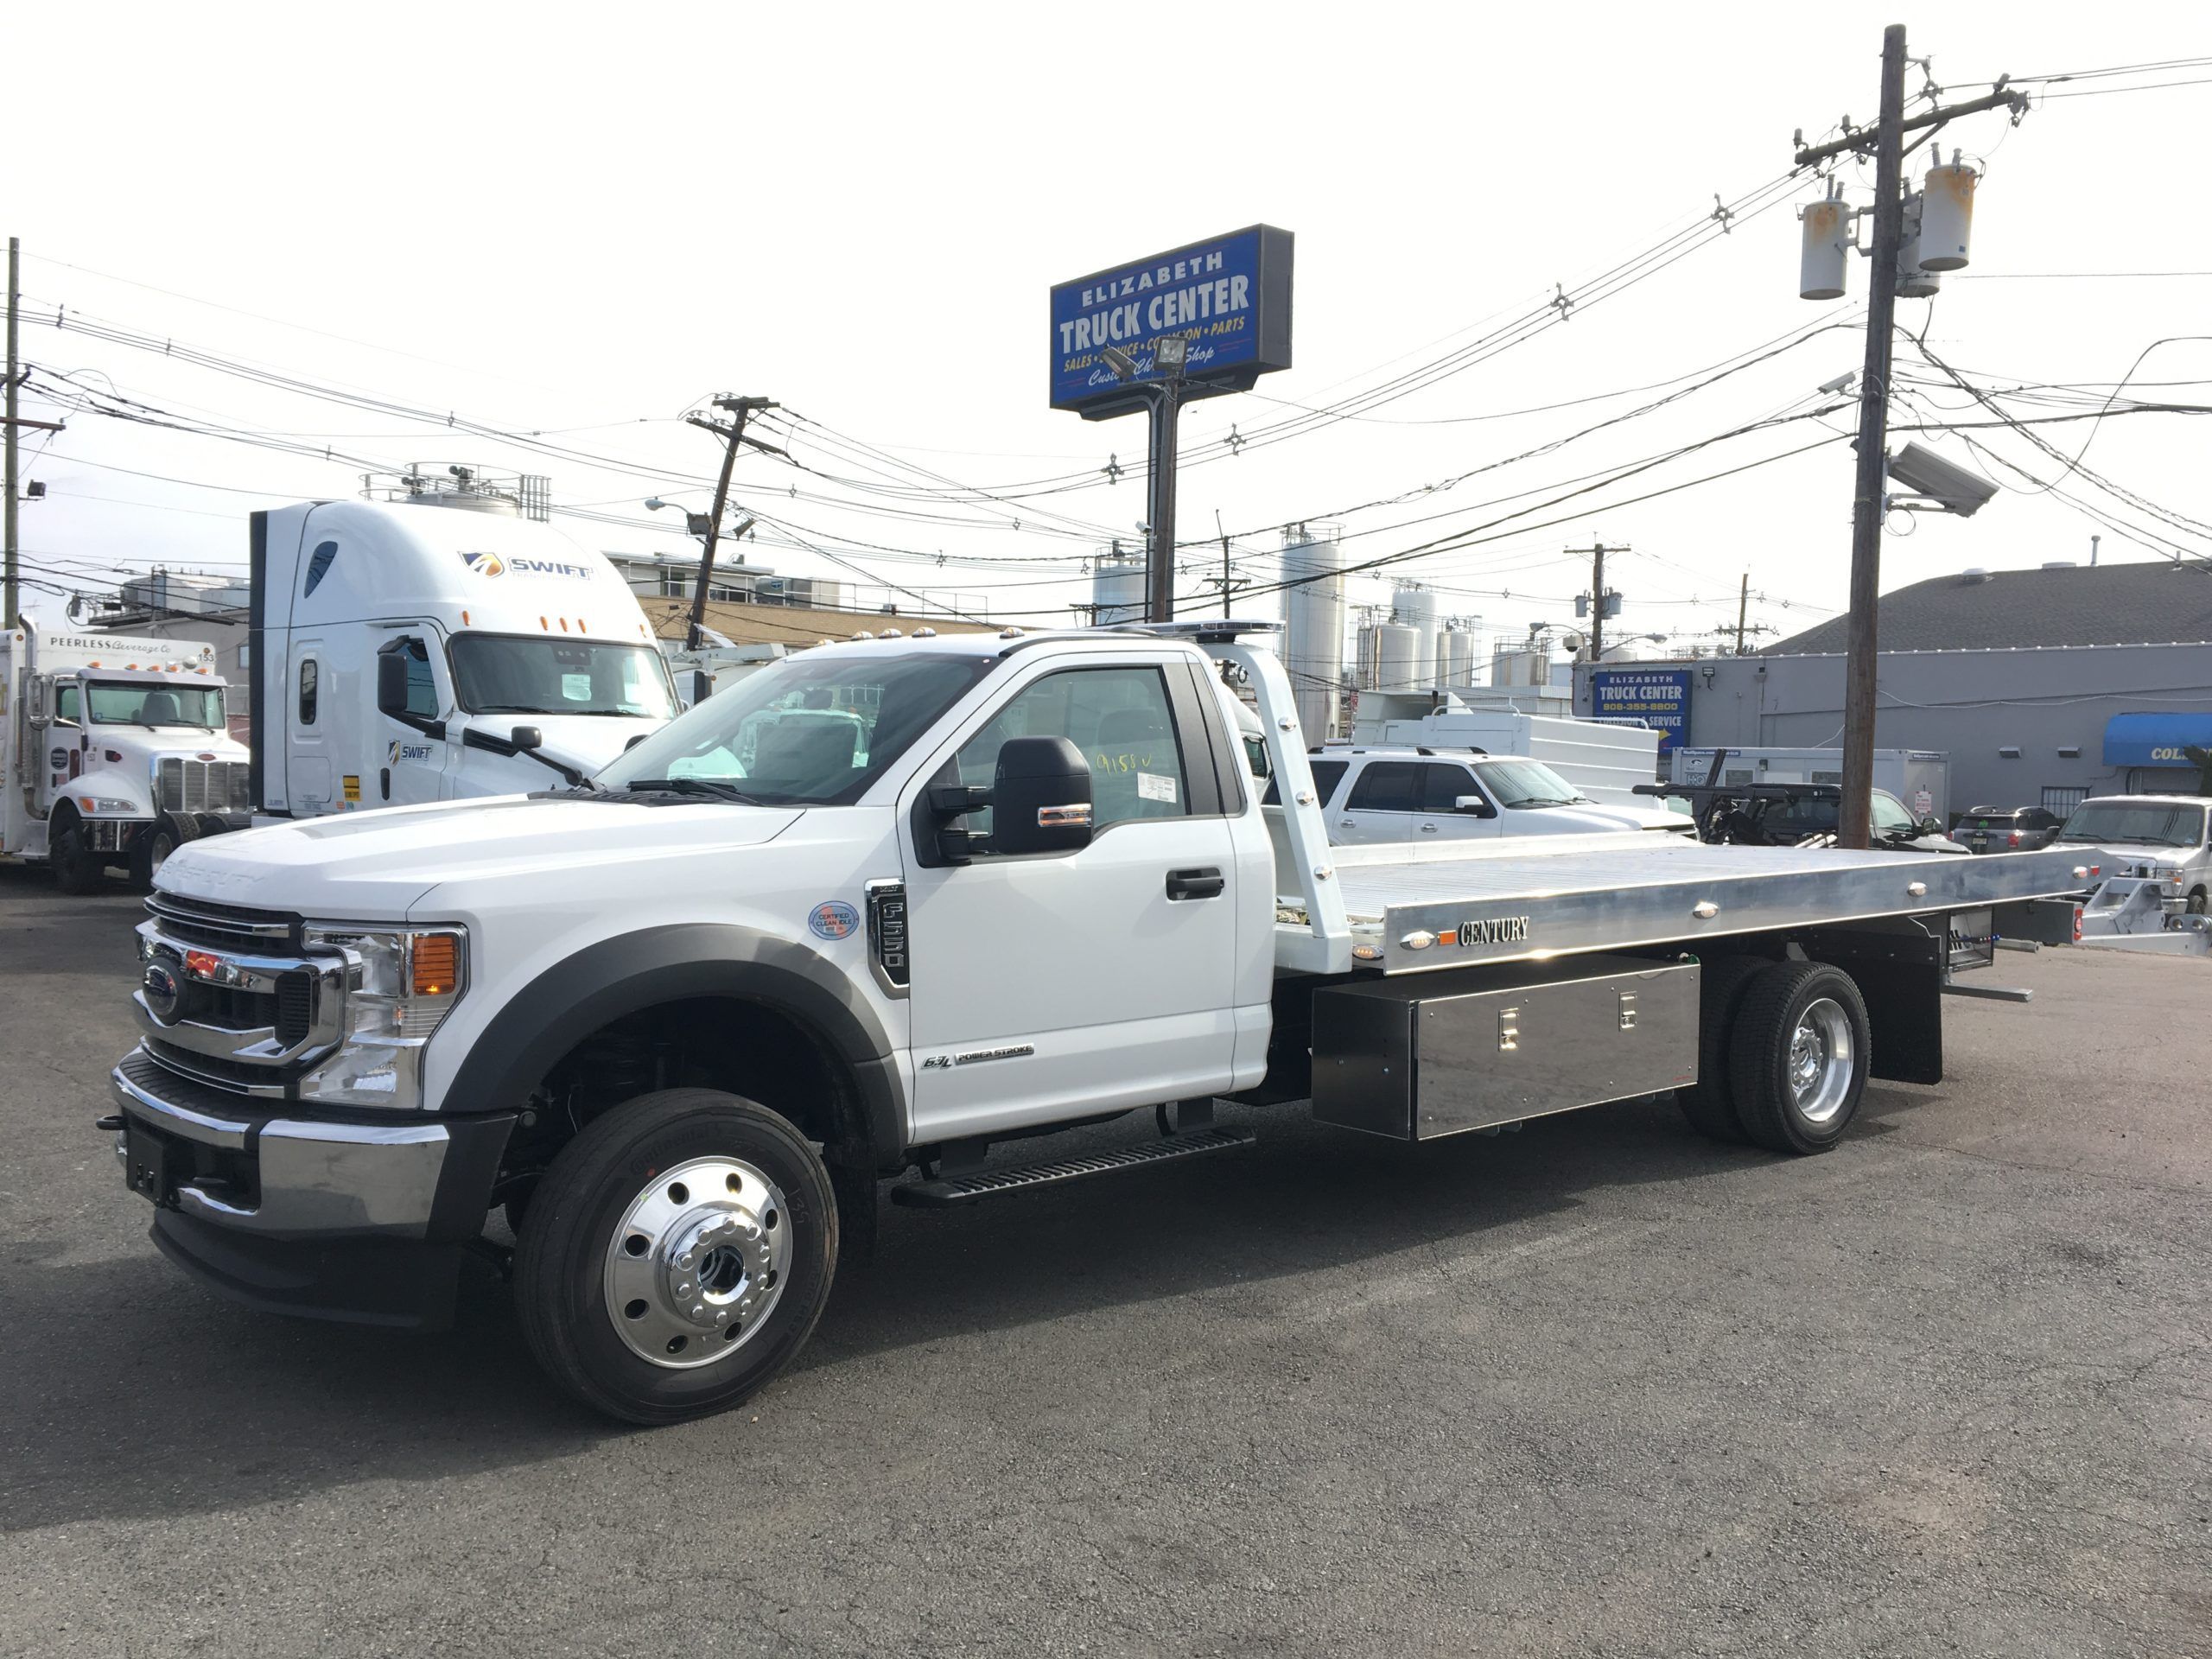 3023: 2020 Ford F-550 4×4 w 19′ Century 10 series Aluminum Carrier